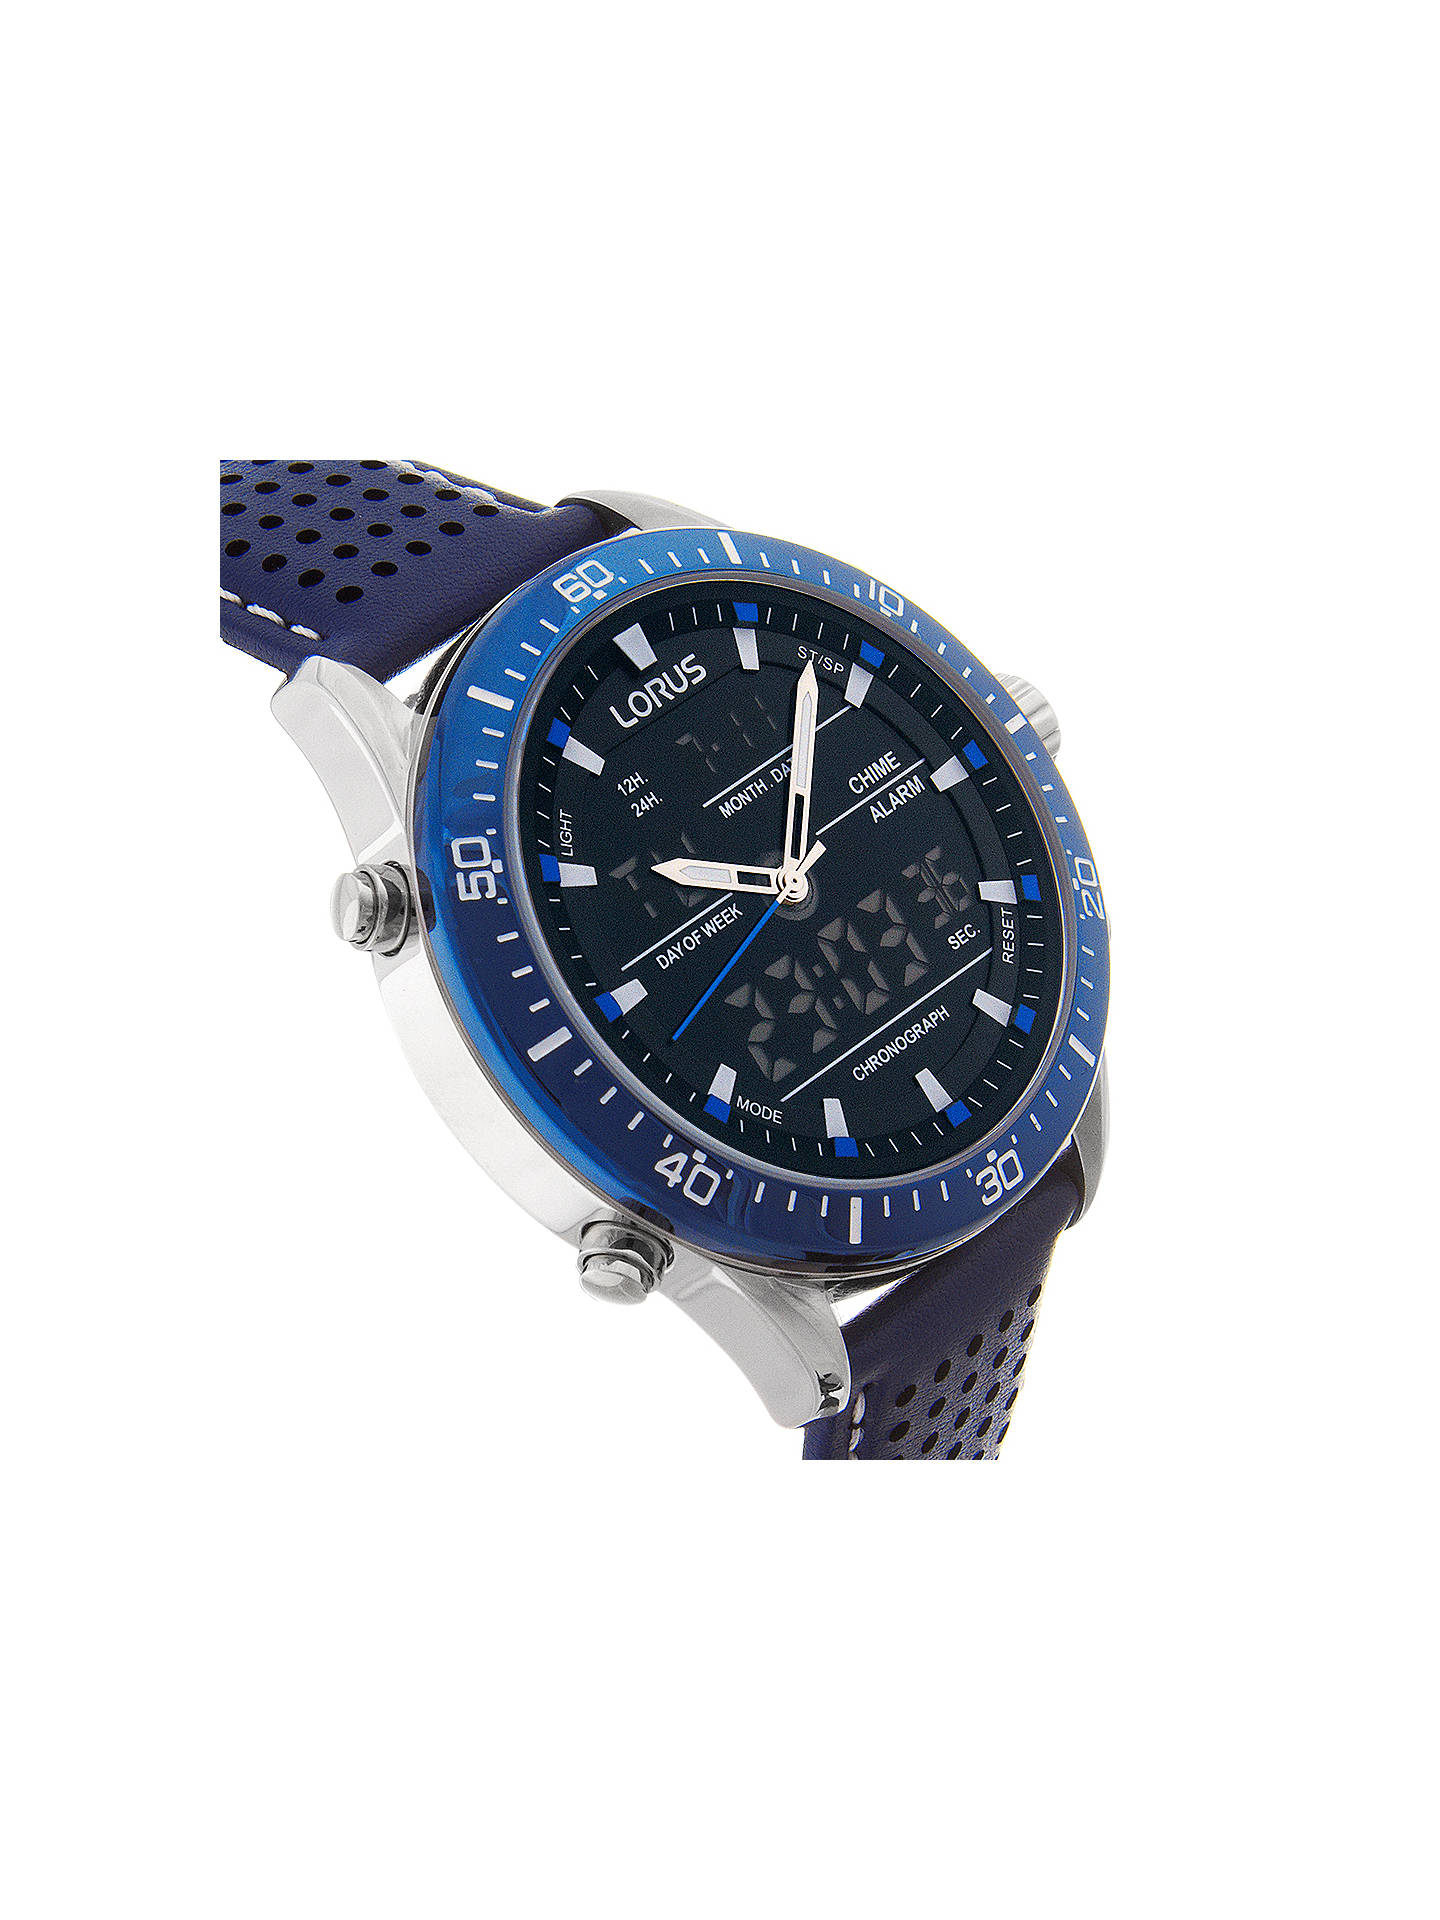 19fd1d302 ... Buy Lorus RW643AX9 Men's Analogue/Digital Chronograph Sports Leather Strap  Watch, Blue/Black